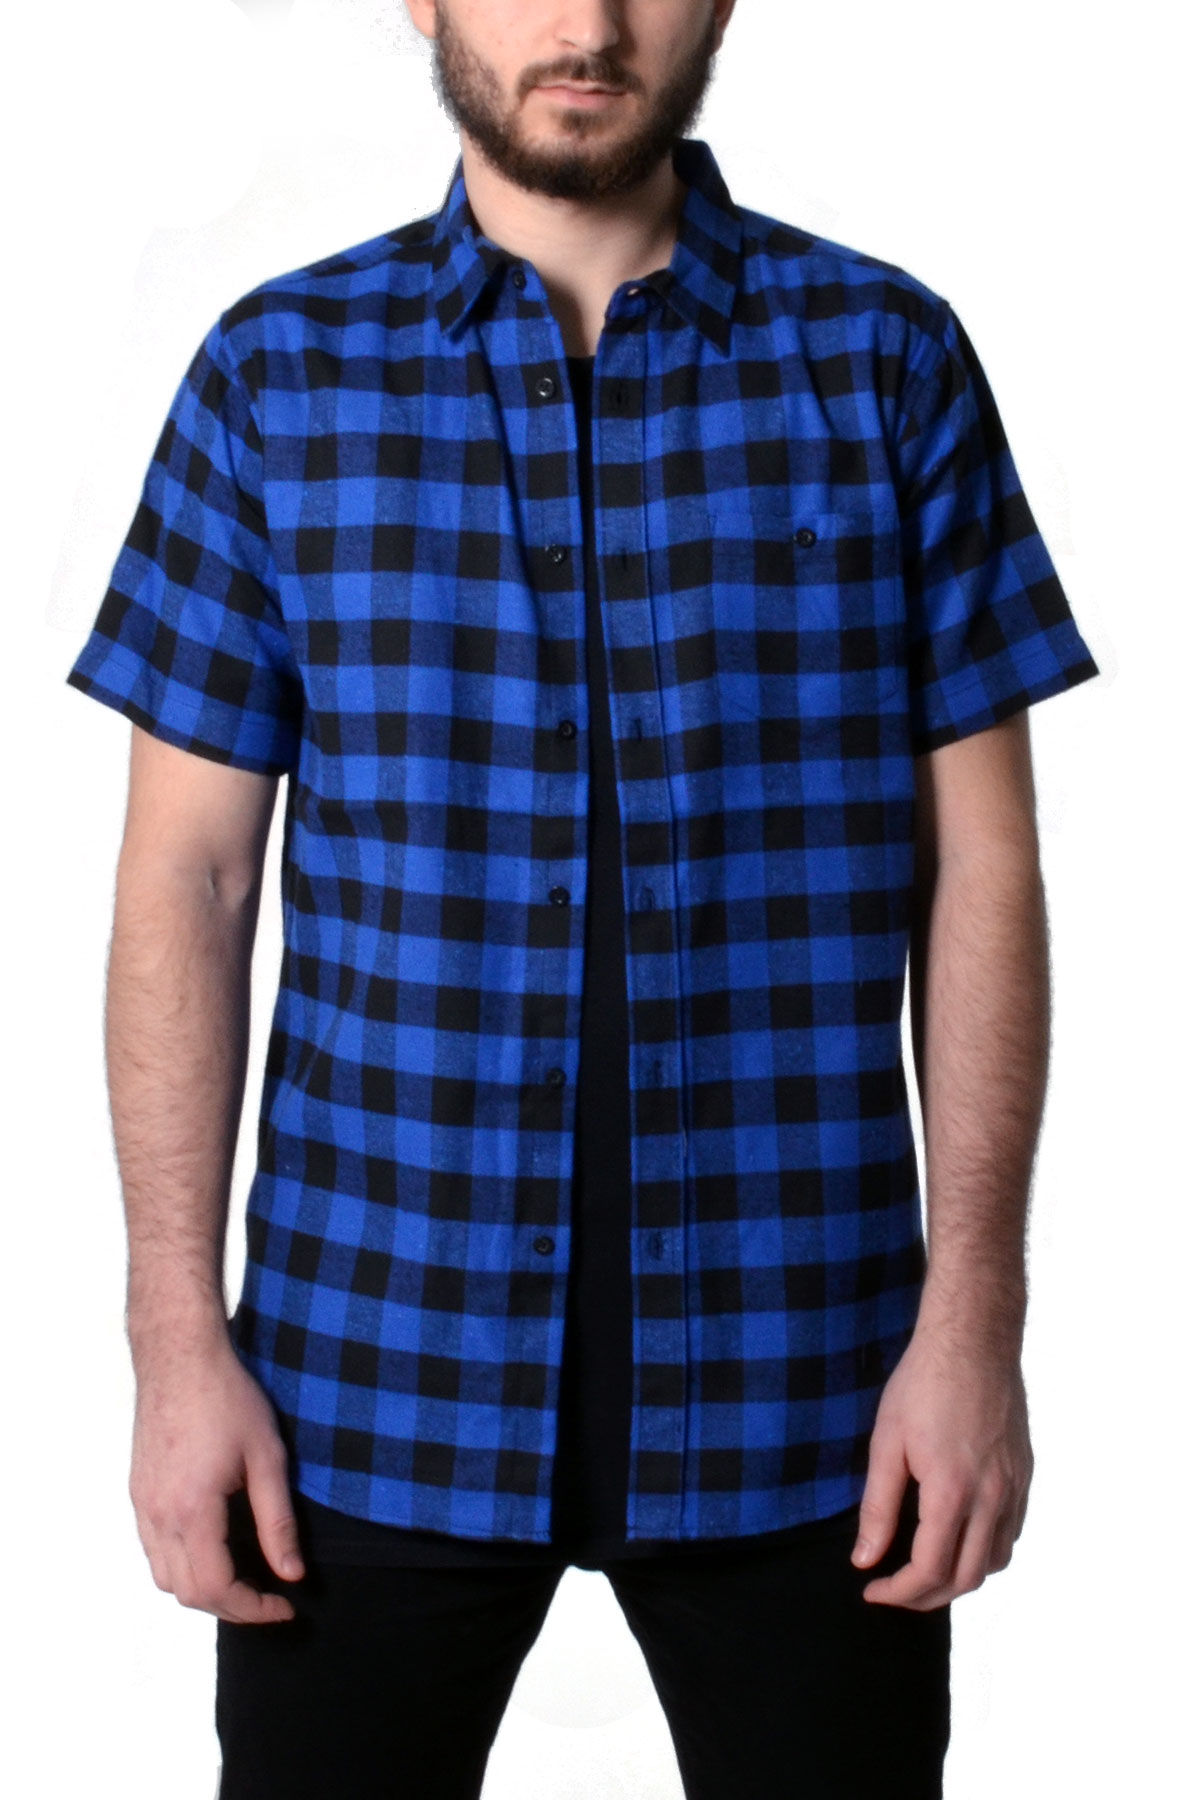 Image of Blue and Black Short Sleeve Checkered Shirt